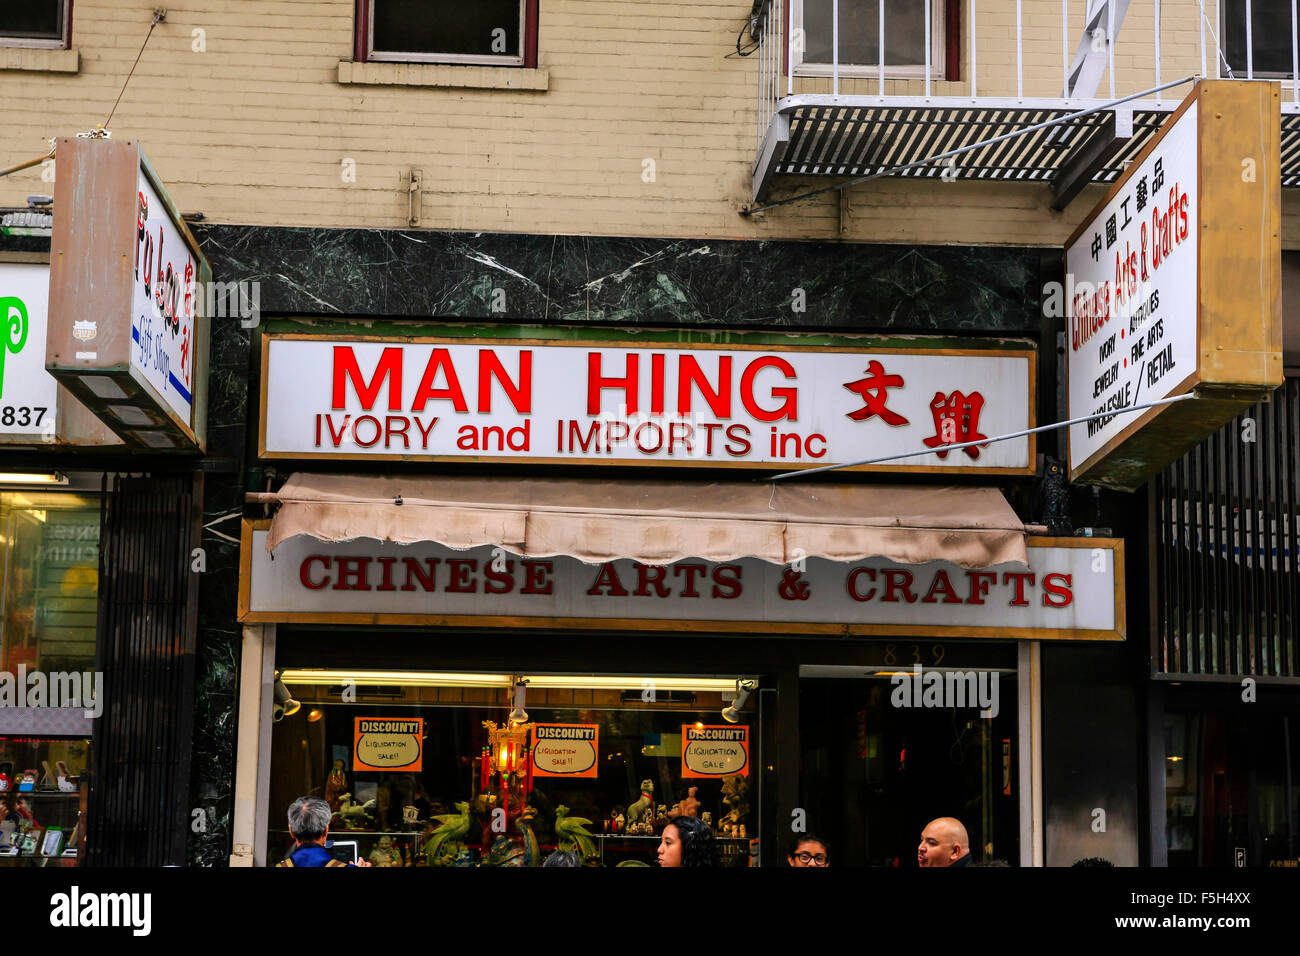 Man Hing Ivory Imports on Grant Street in Chinatown in San Francisco, California - Stock Image